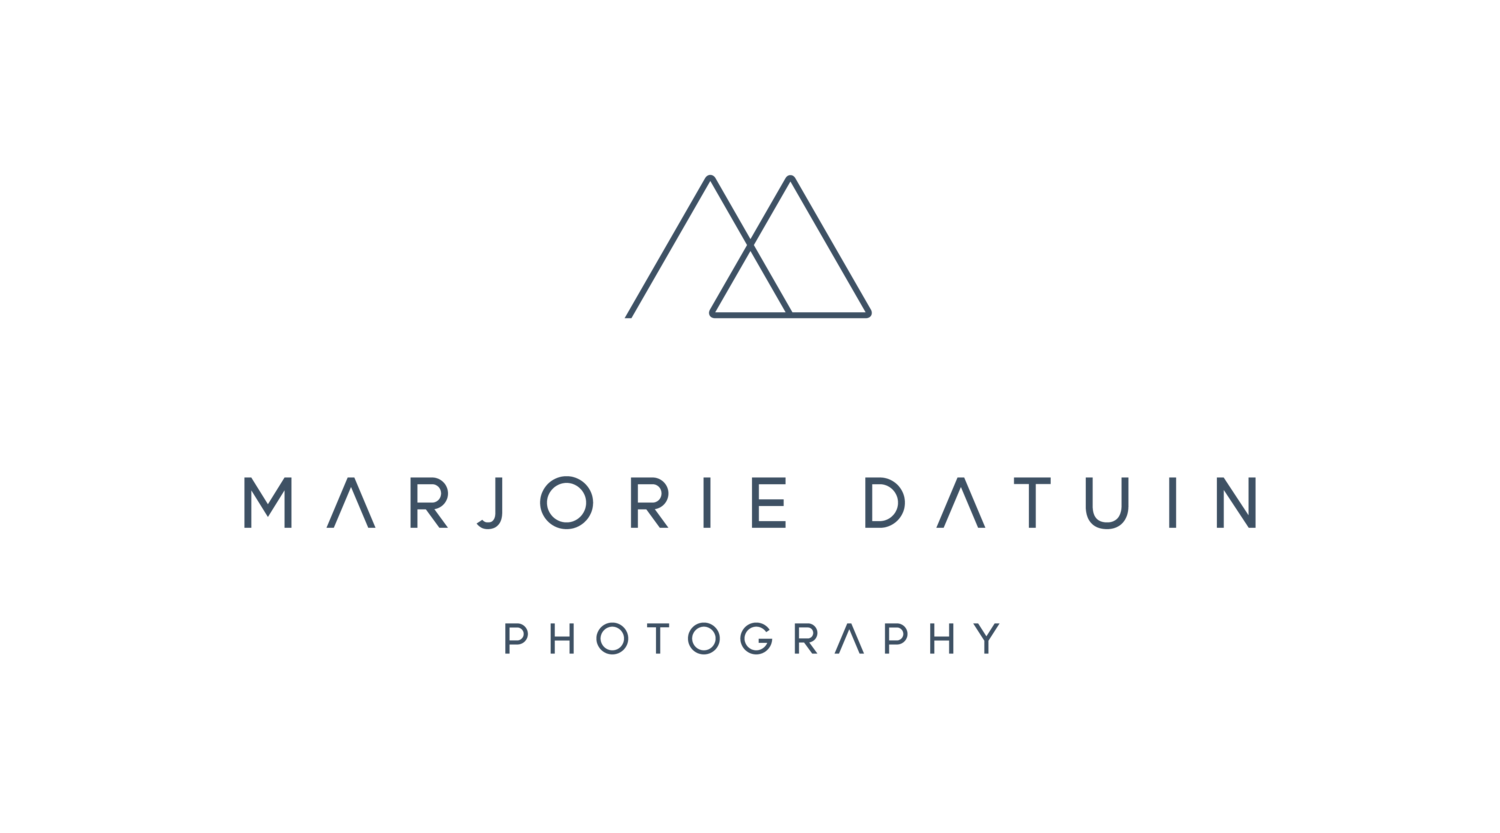 Marjorie Datuin Photography